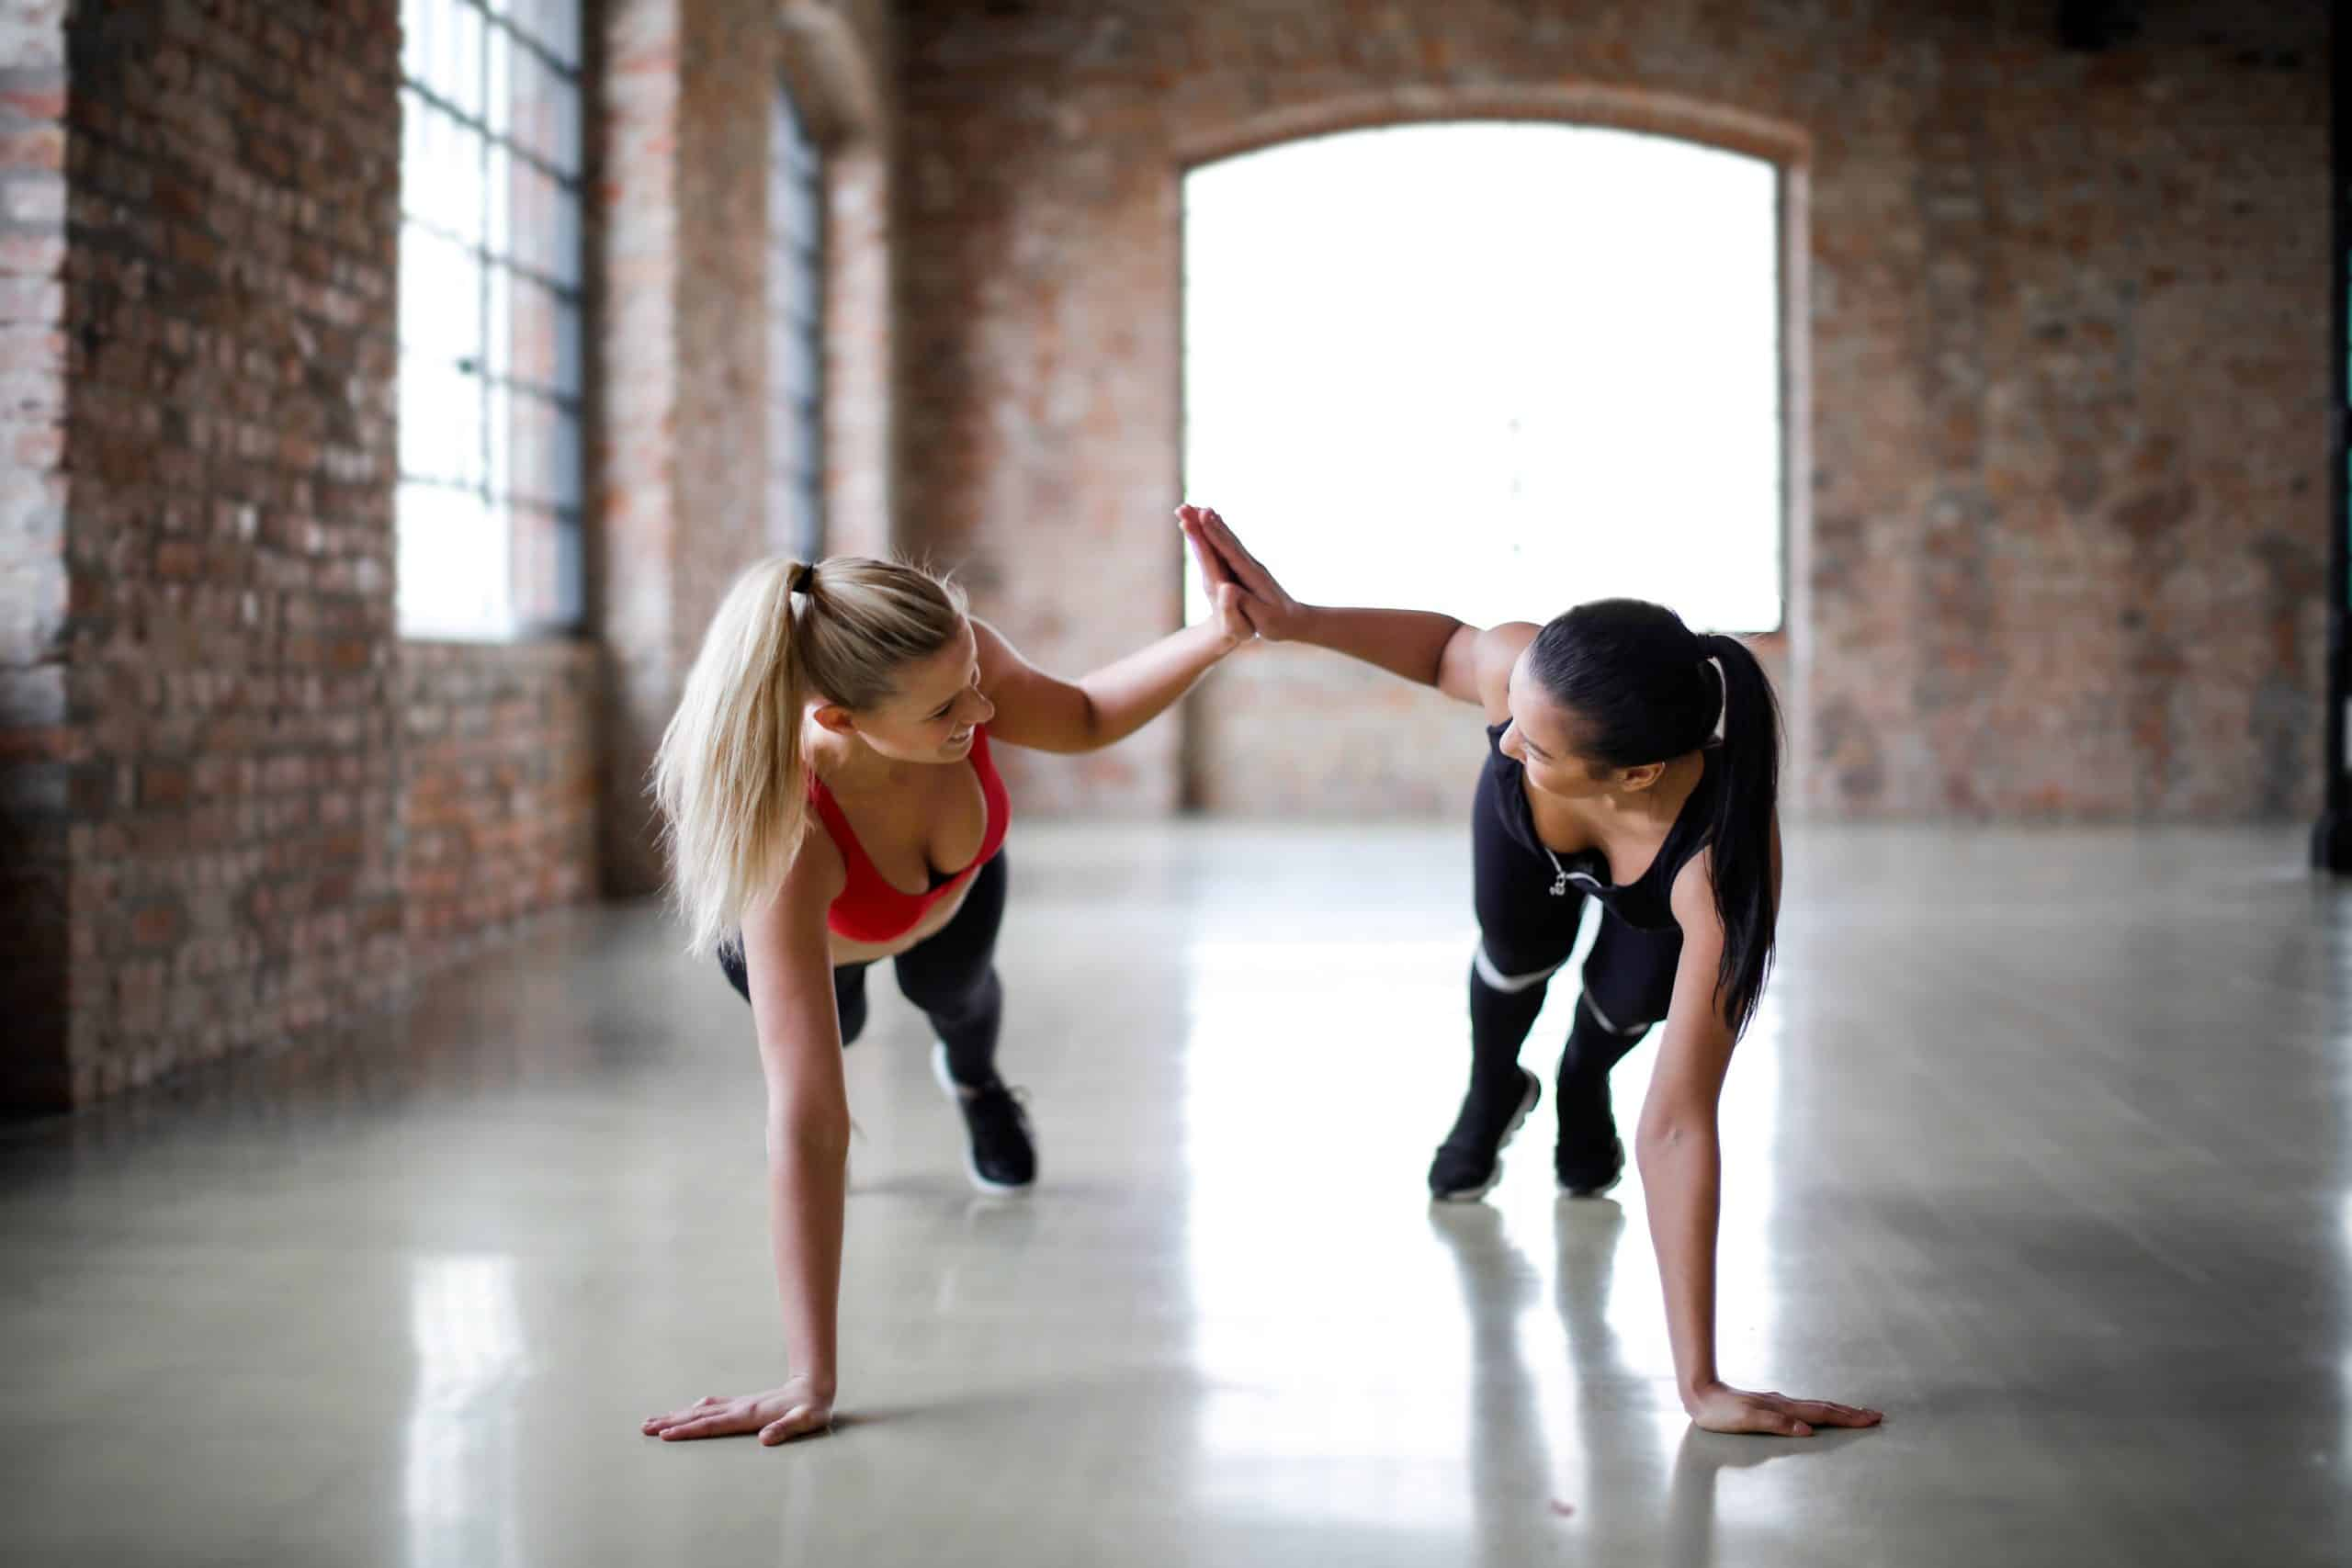 Women working out together in gym class